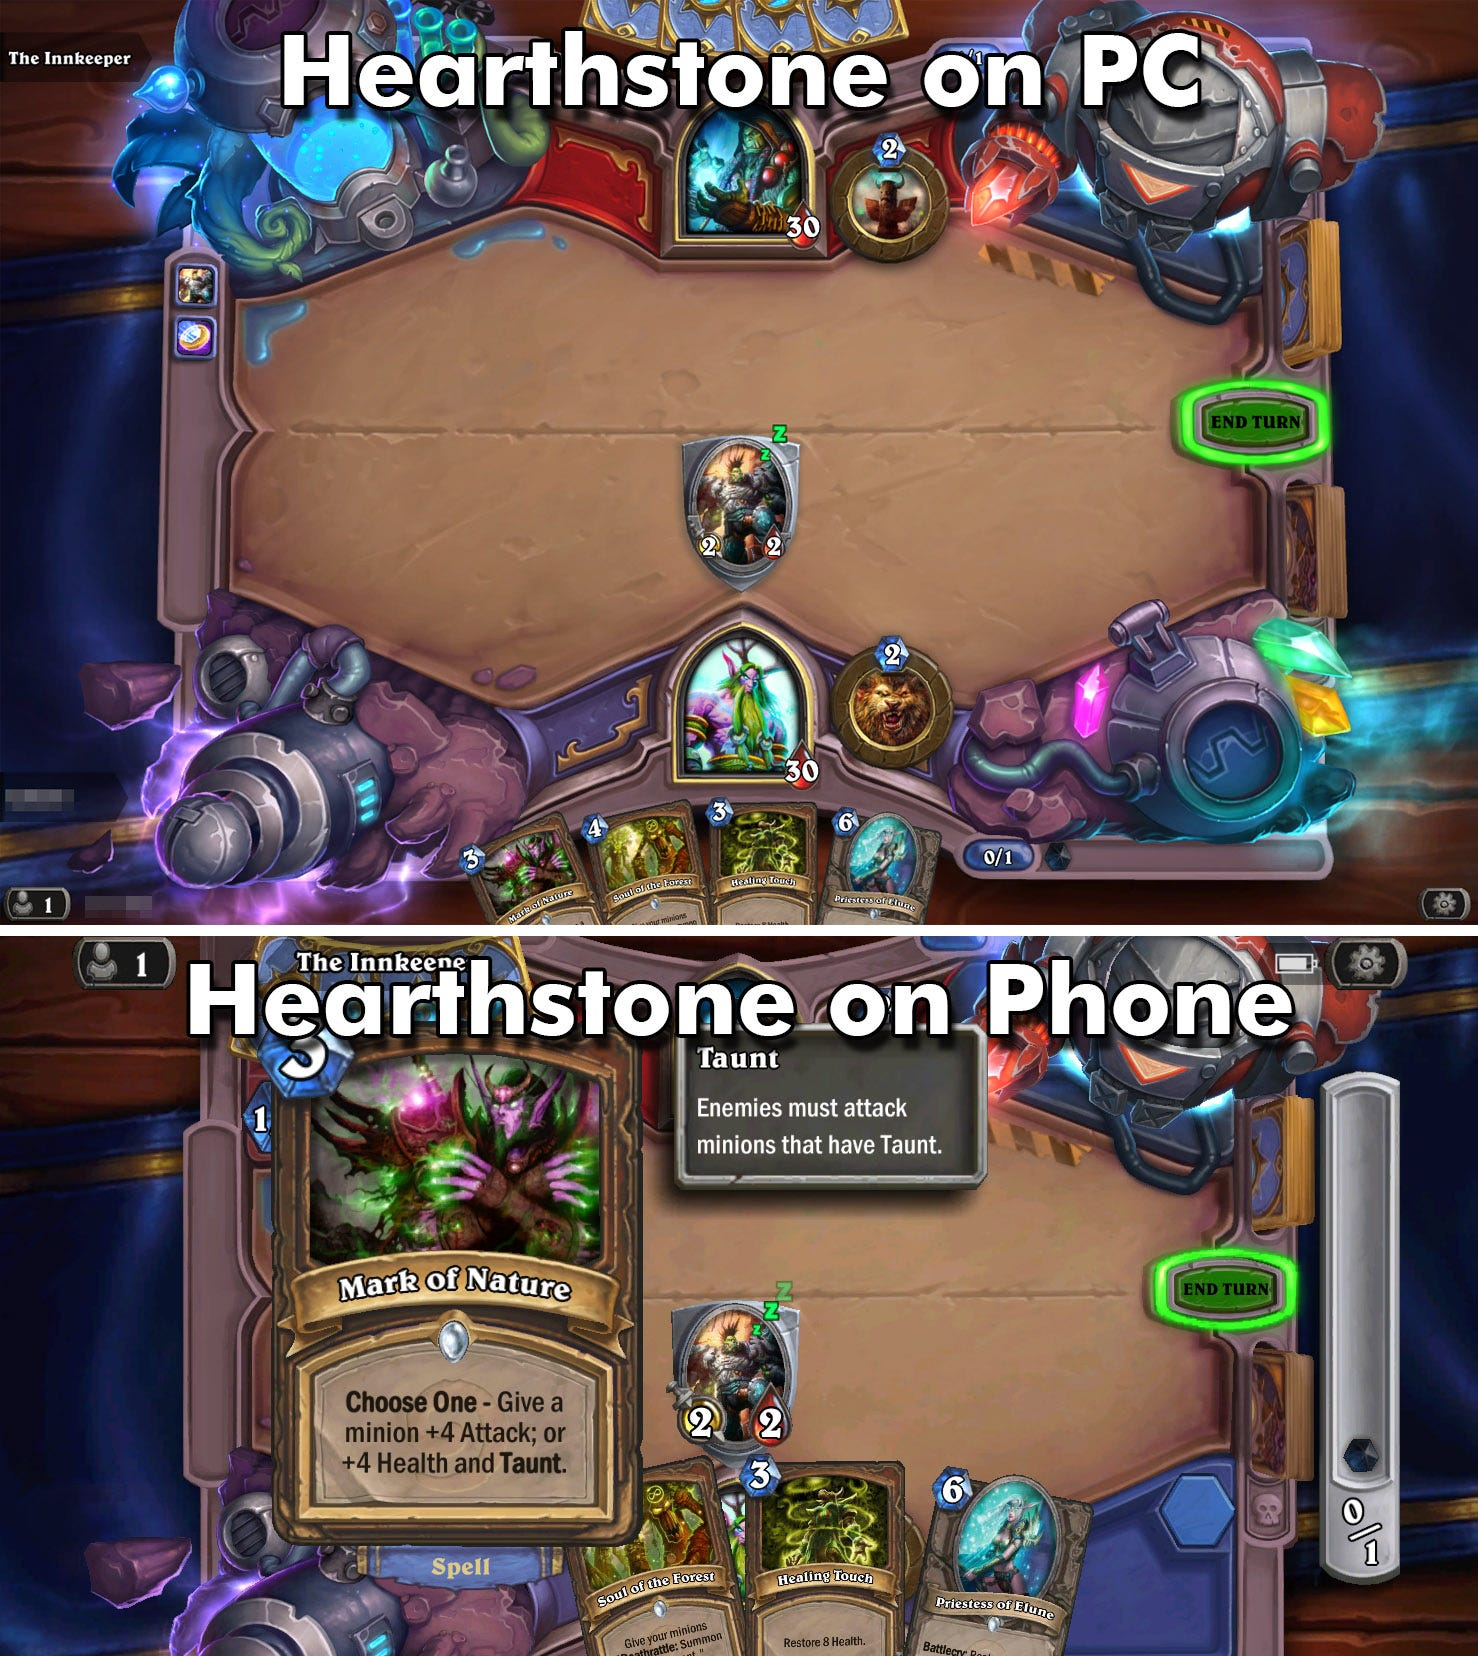 Hearthstone's adaptive interface is a model for usability at any size.